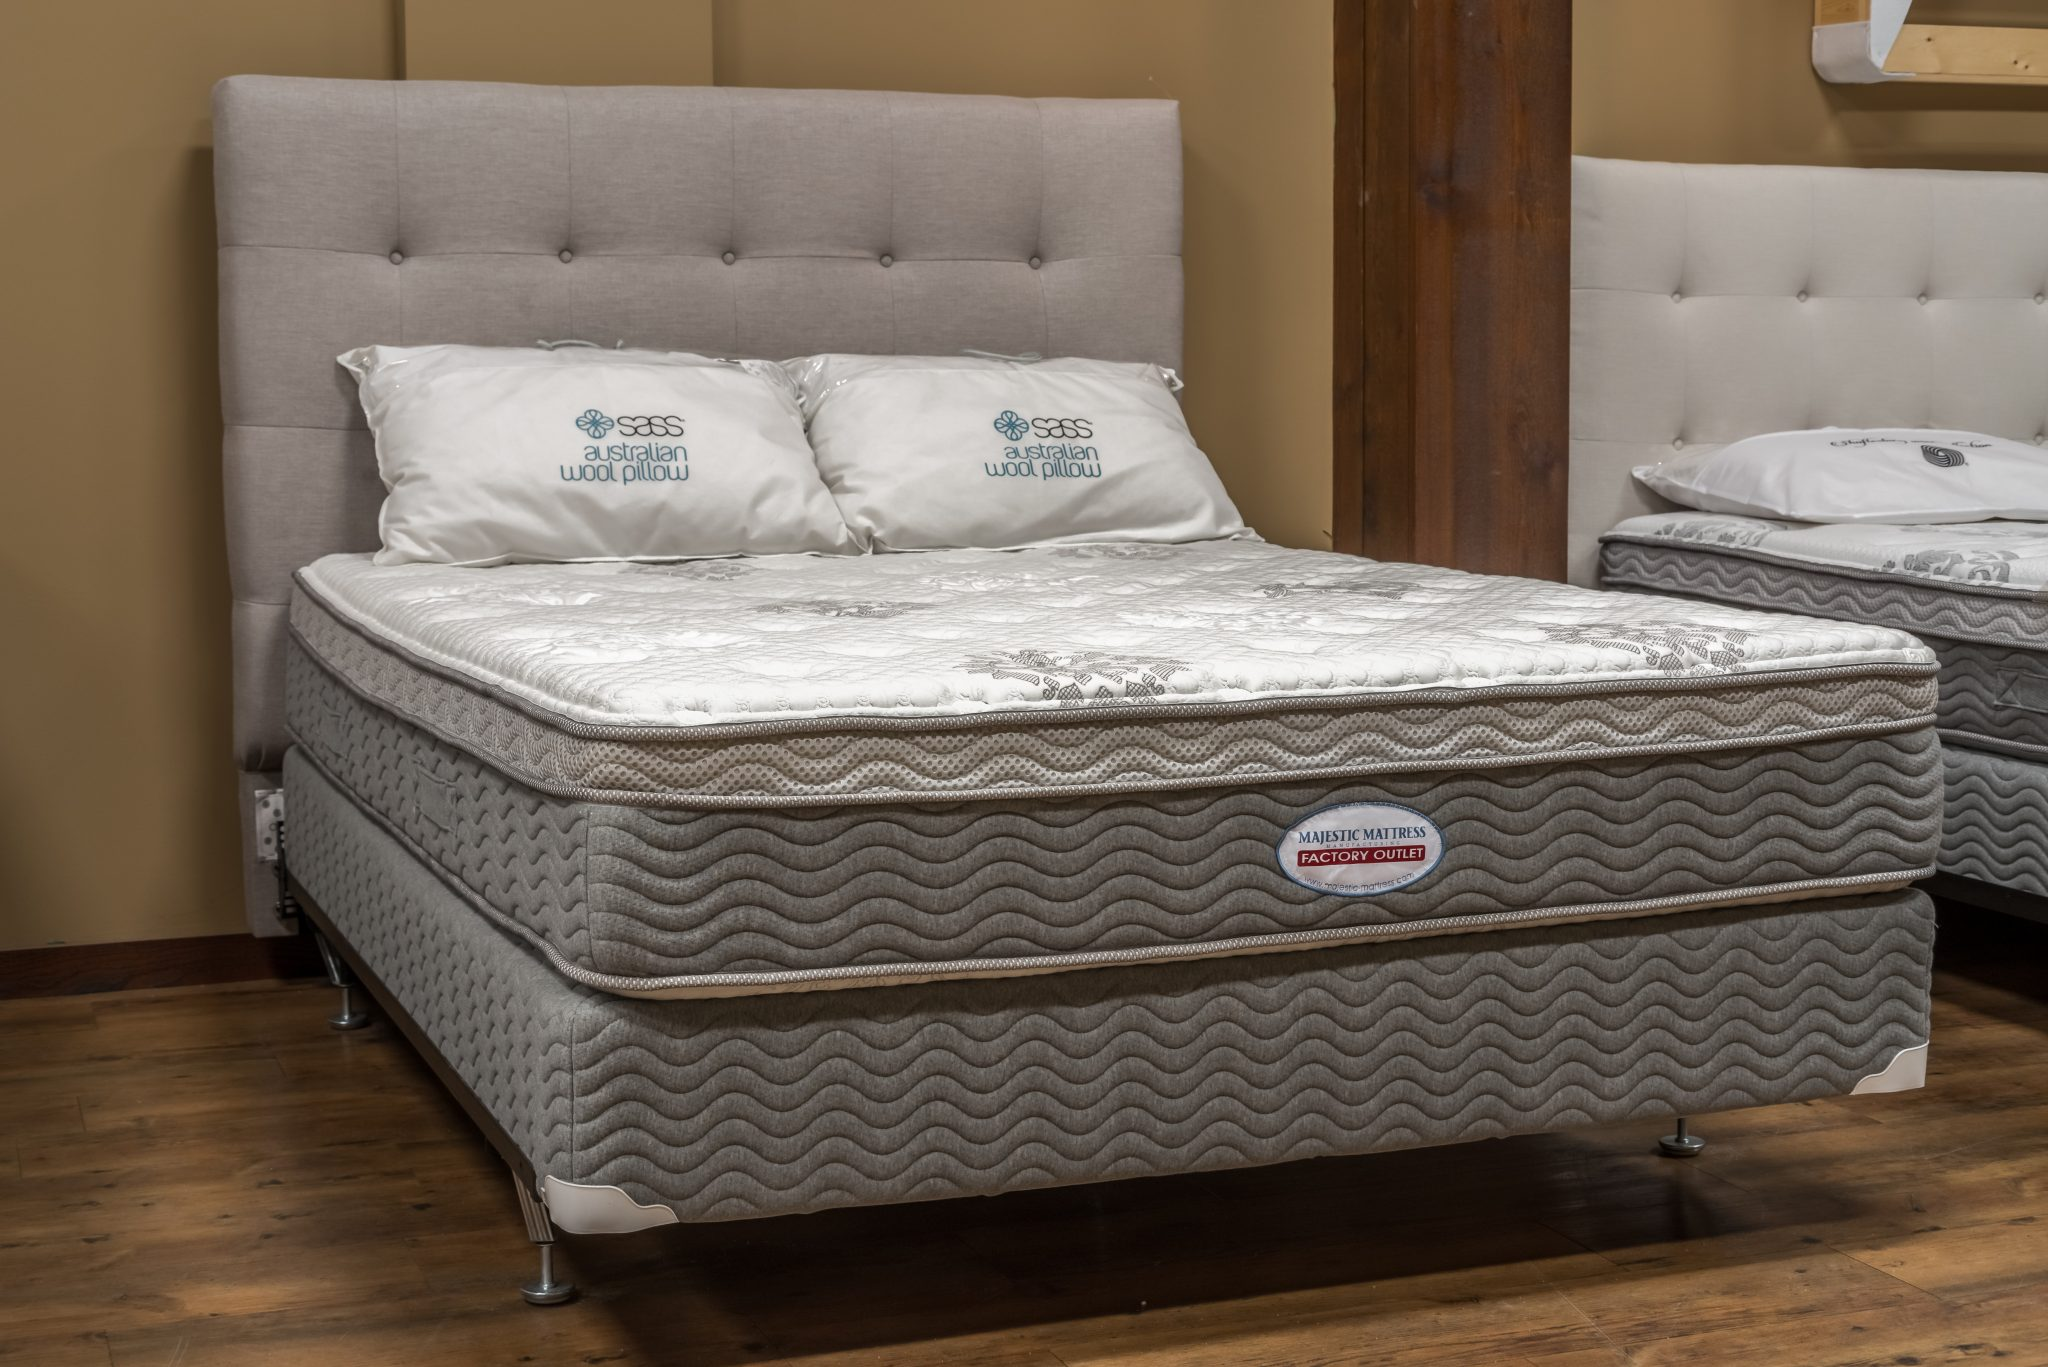 Kensington Supreme Latex (Soft) | Majestic Mattress